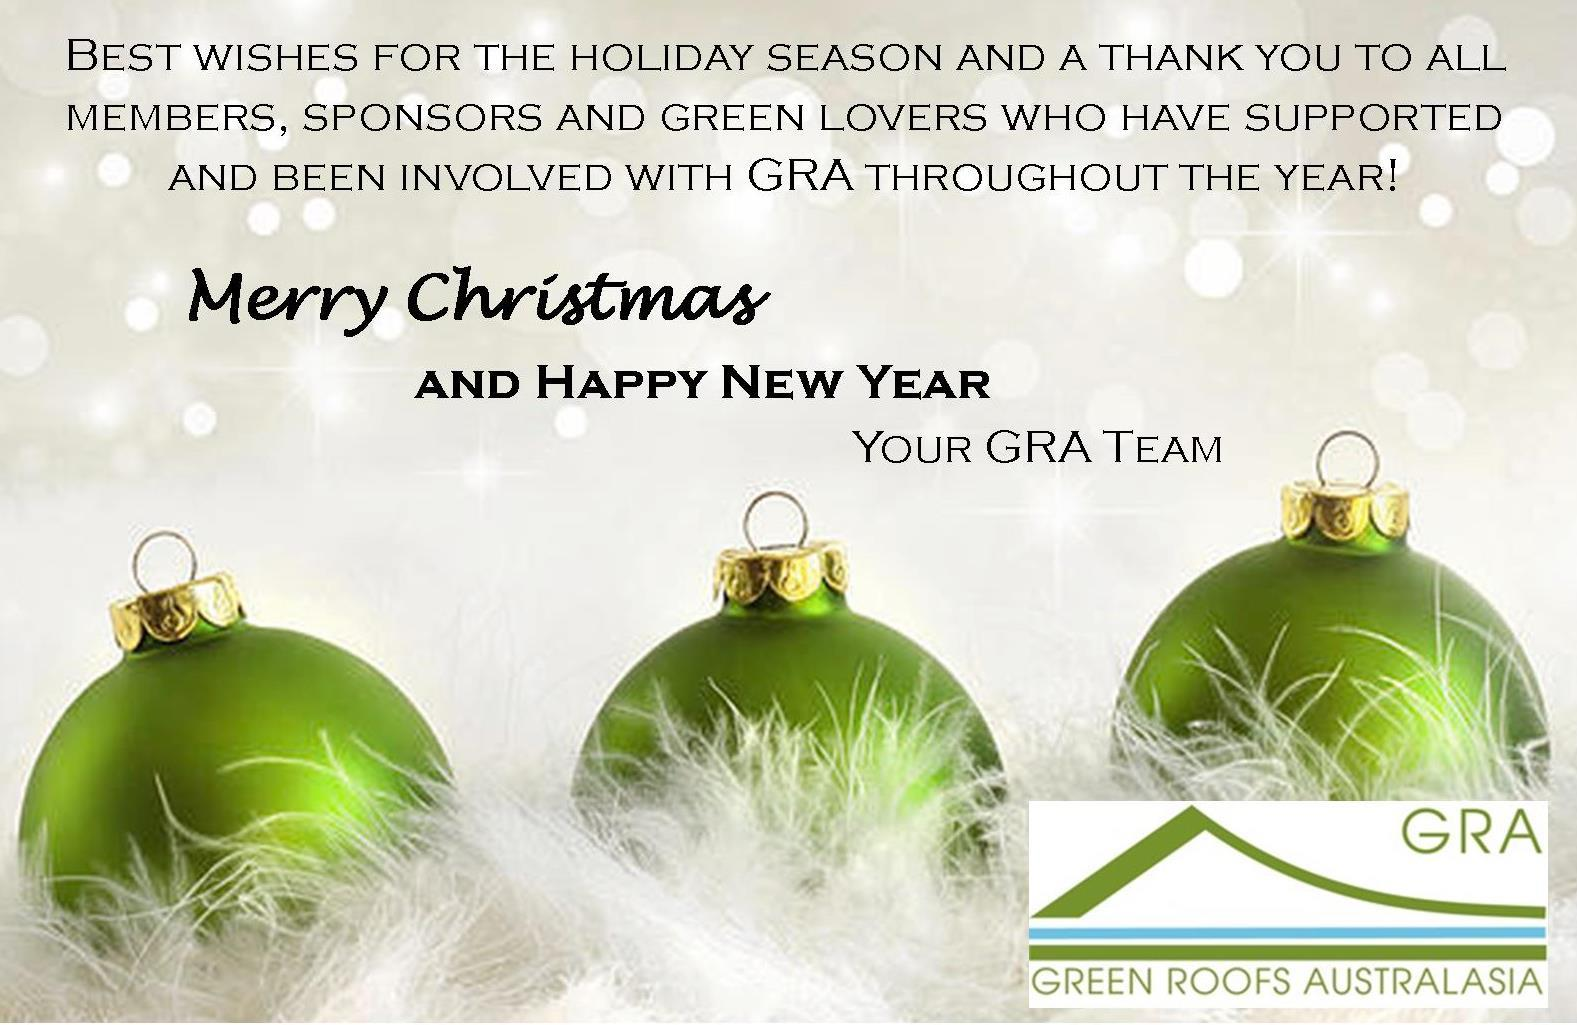 Seasons Greetings And A Happy New Year Green Roofs Australasia